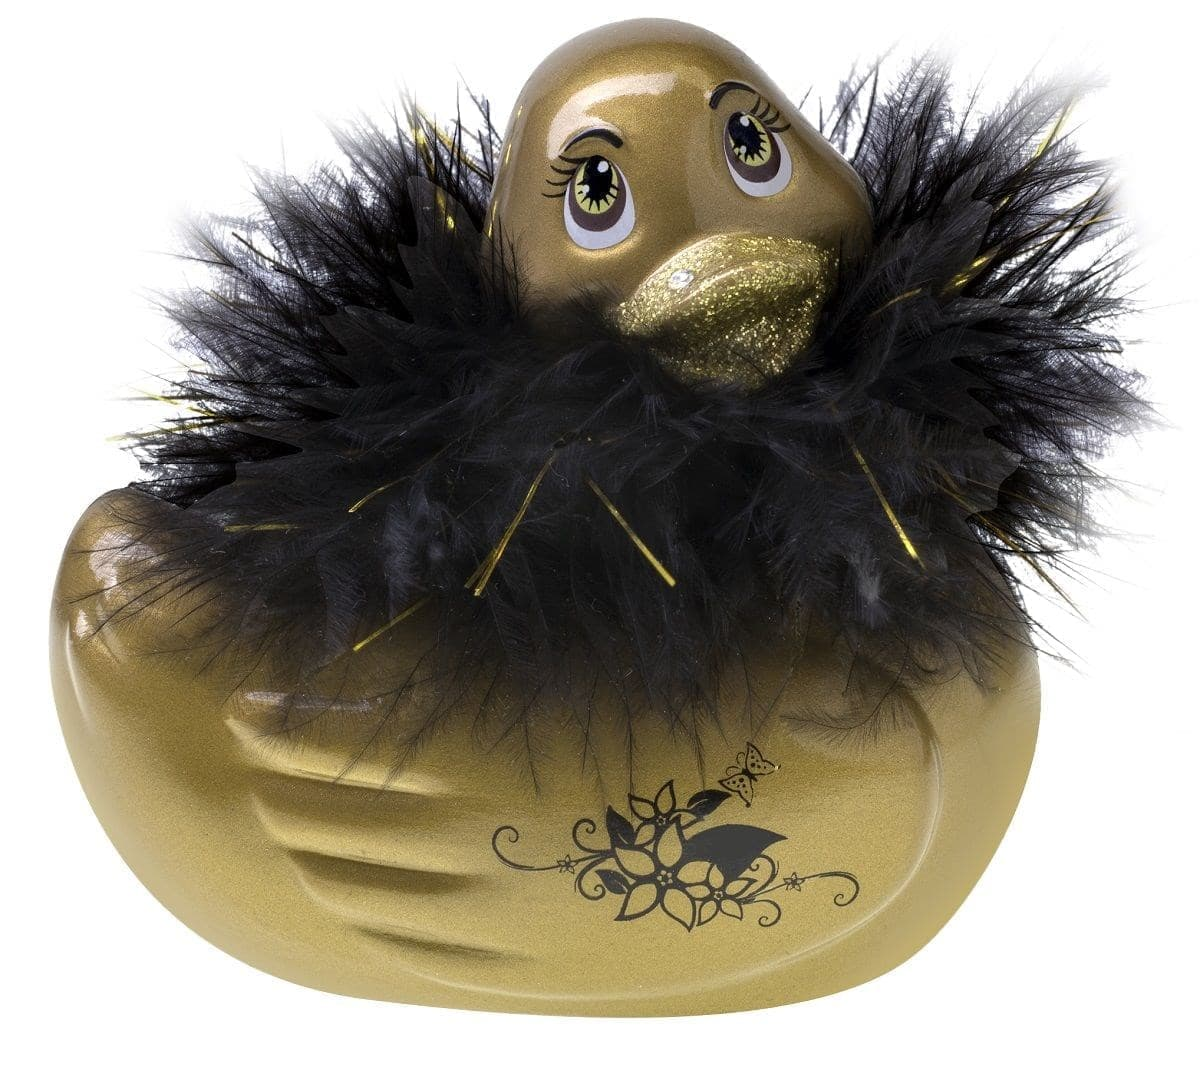 Вибратор-уточка I Rub My Duckie Paris Gold Travel Size - фото 7459